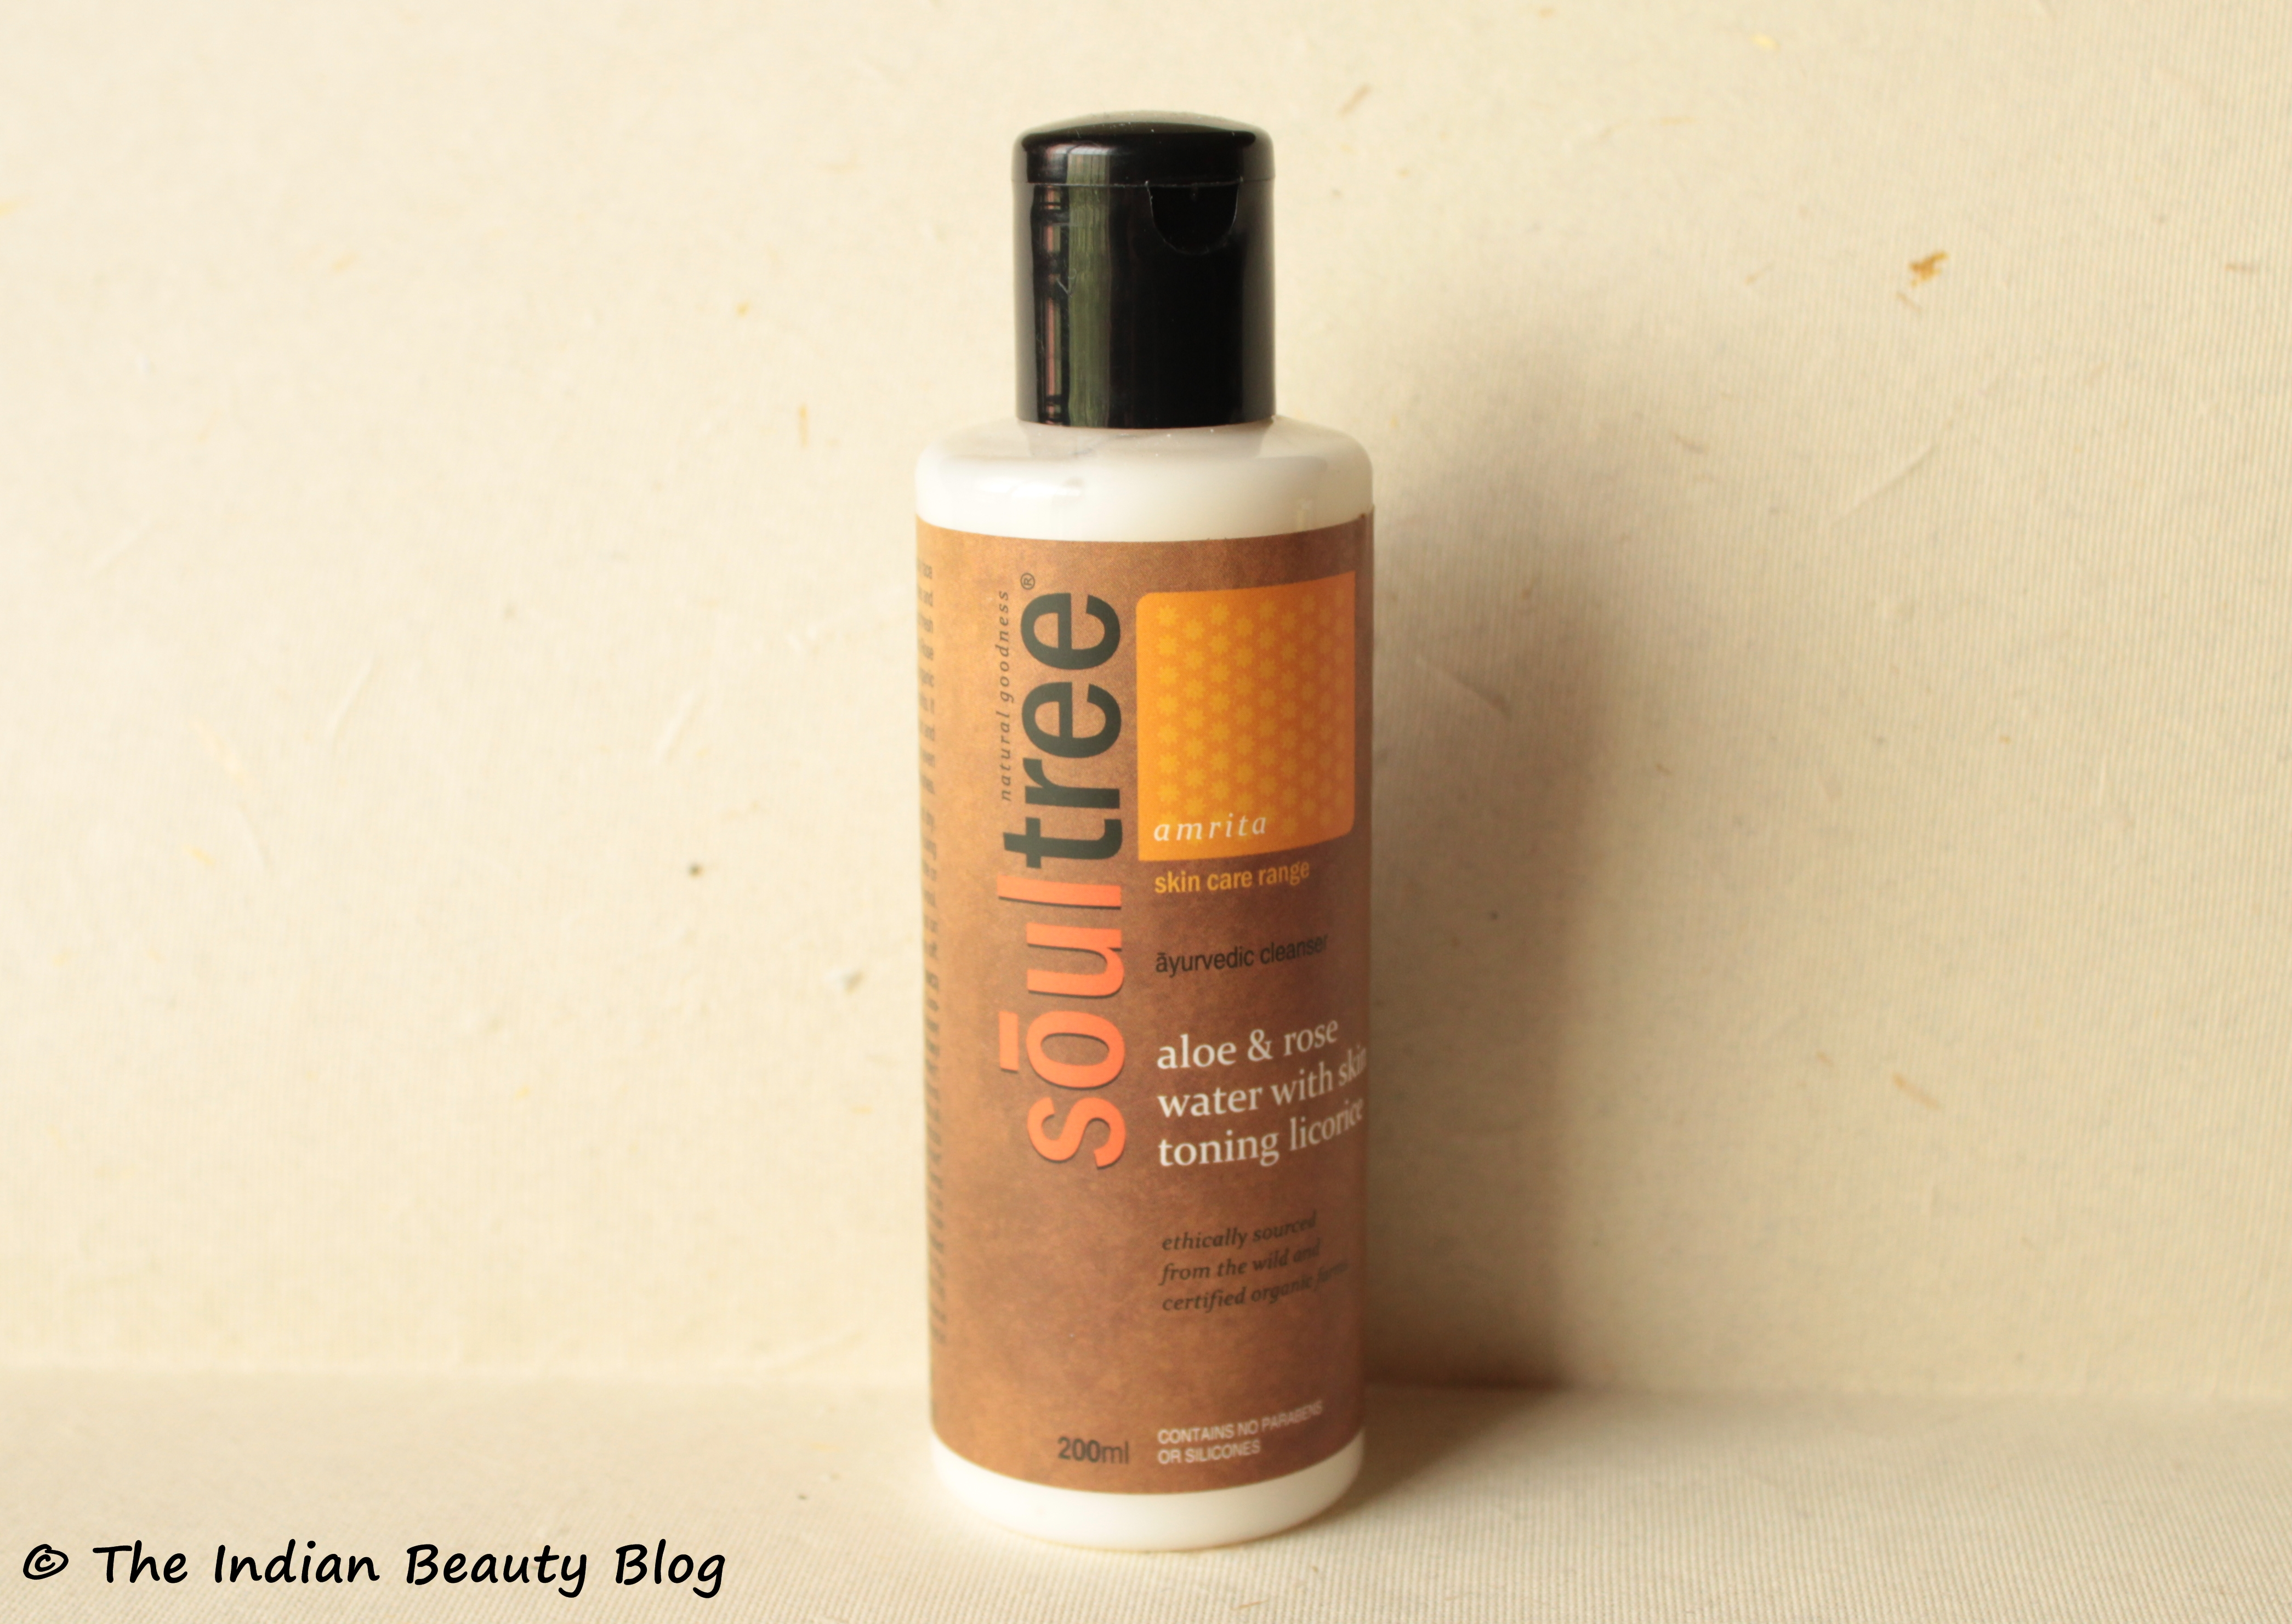 soultree makeup remover (2)